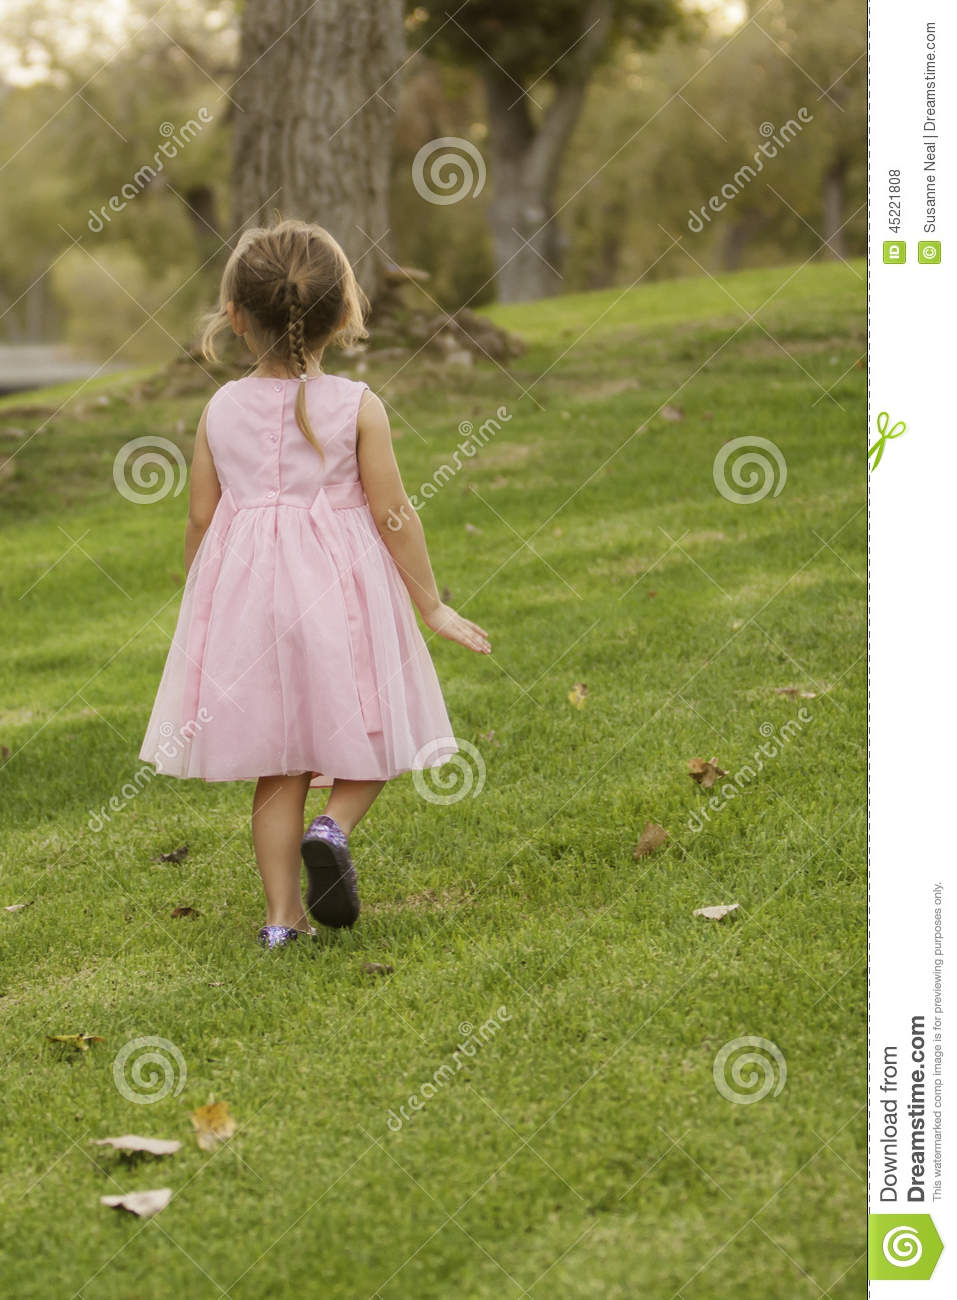 Back View Of Little Girl In Pink Dress On Grass Stock